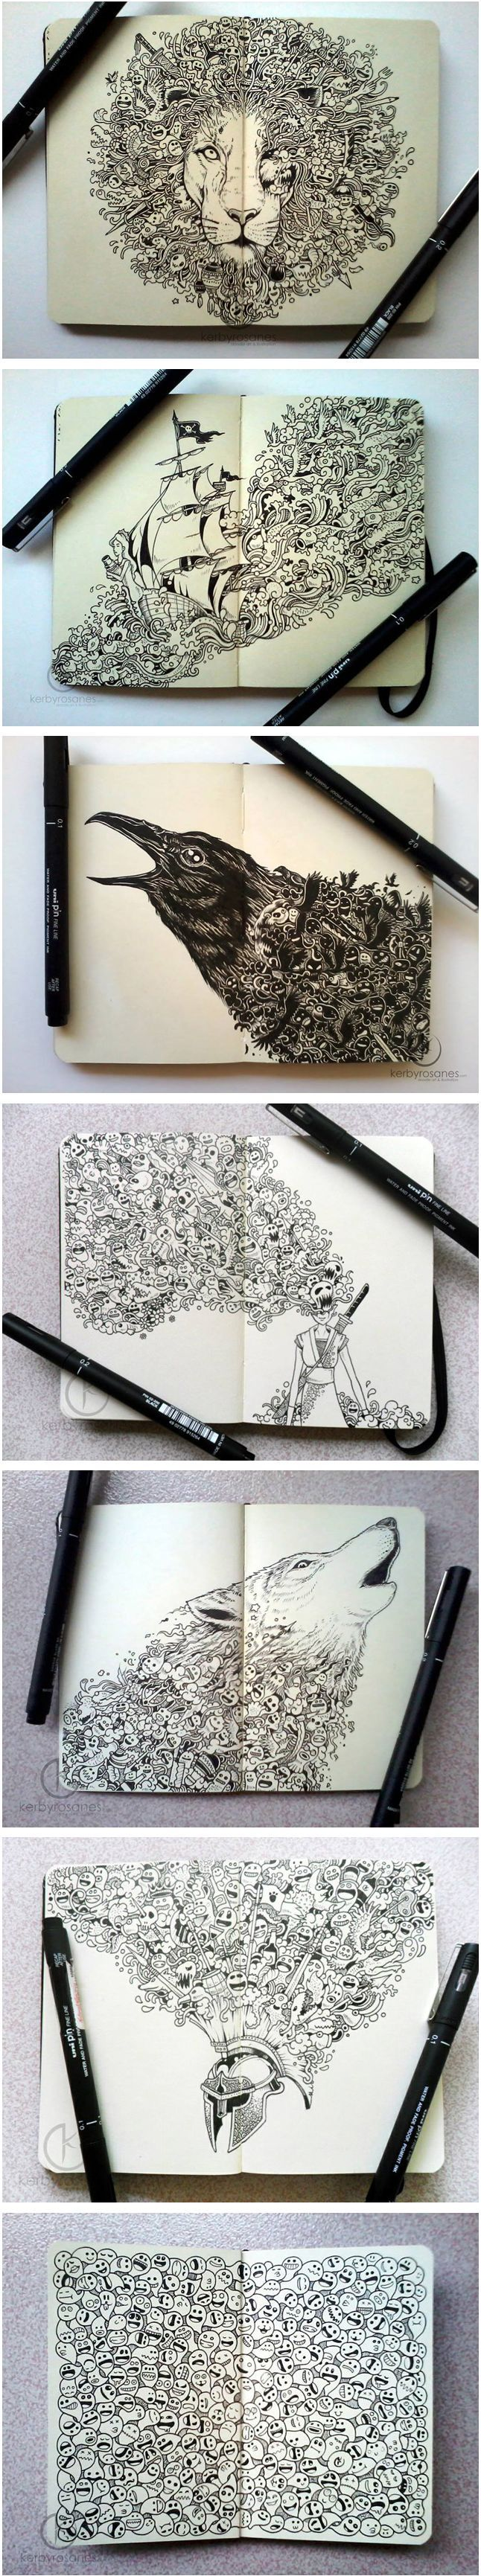 Moleskine Doodles by Kerby Rosanes #illustration #doodles #moleskin